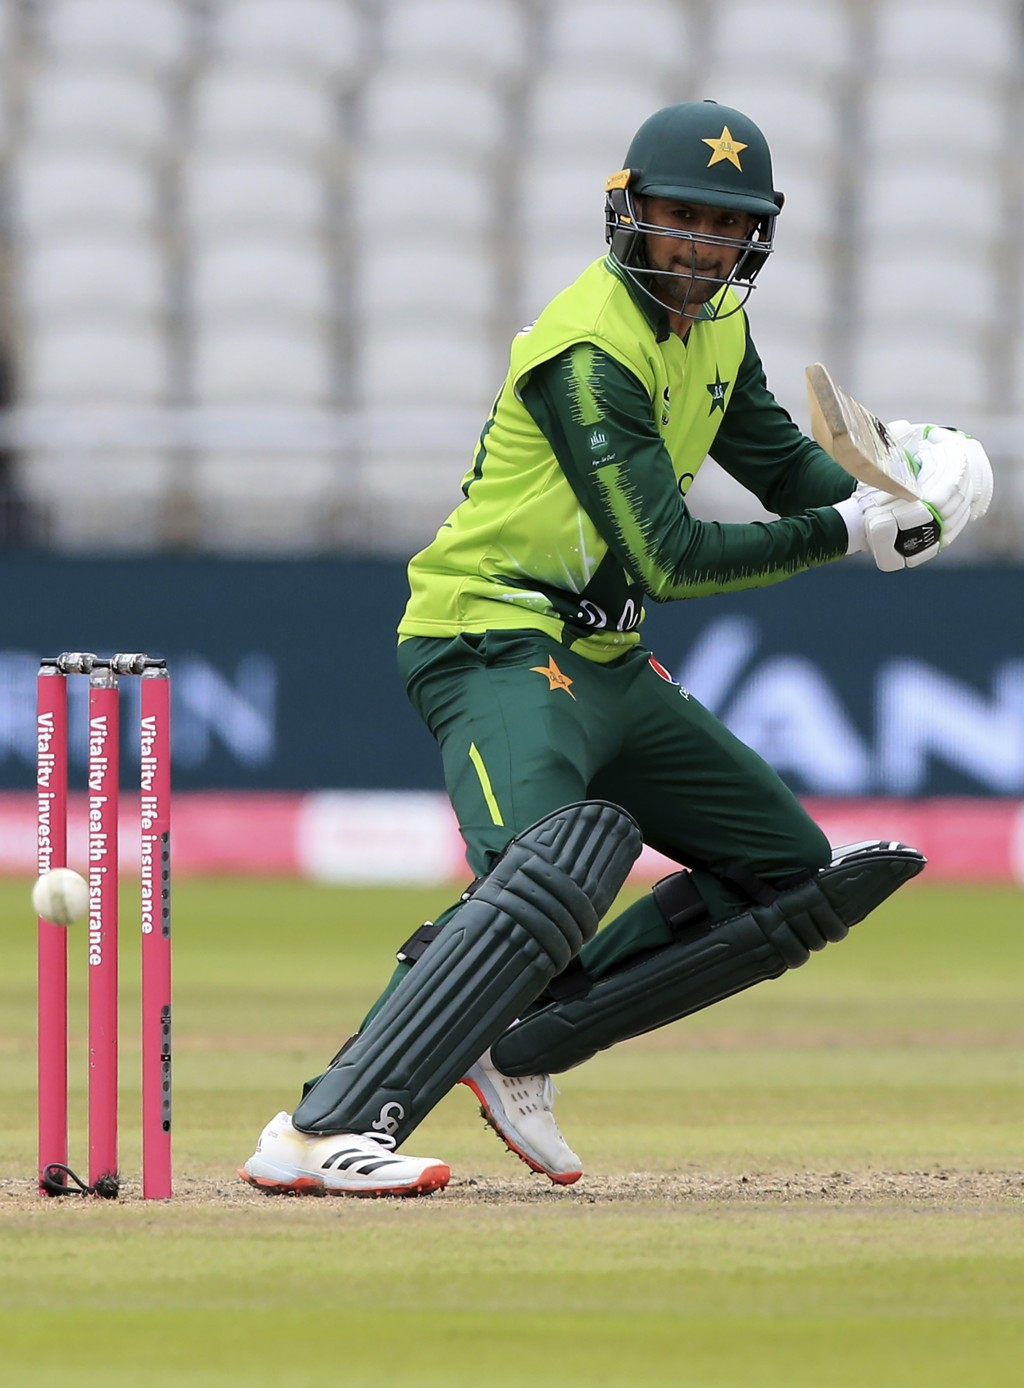 Pakistan's Shoaib Malik bats during the second Twenty20 cricket match between England and Pakistan, at Old Trafford in Manchester, England, Sunday, Au...